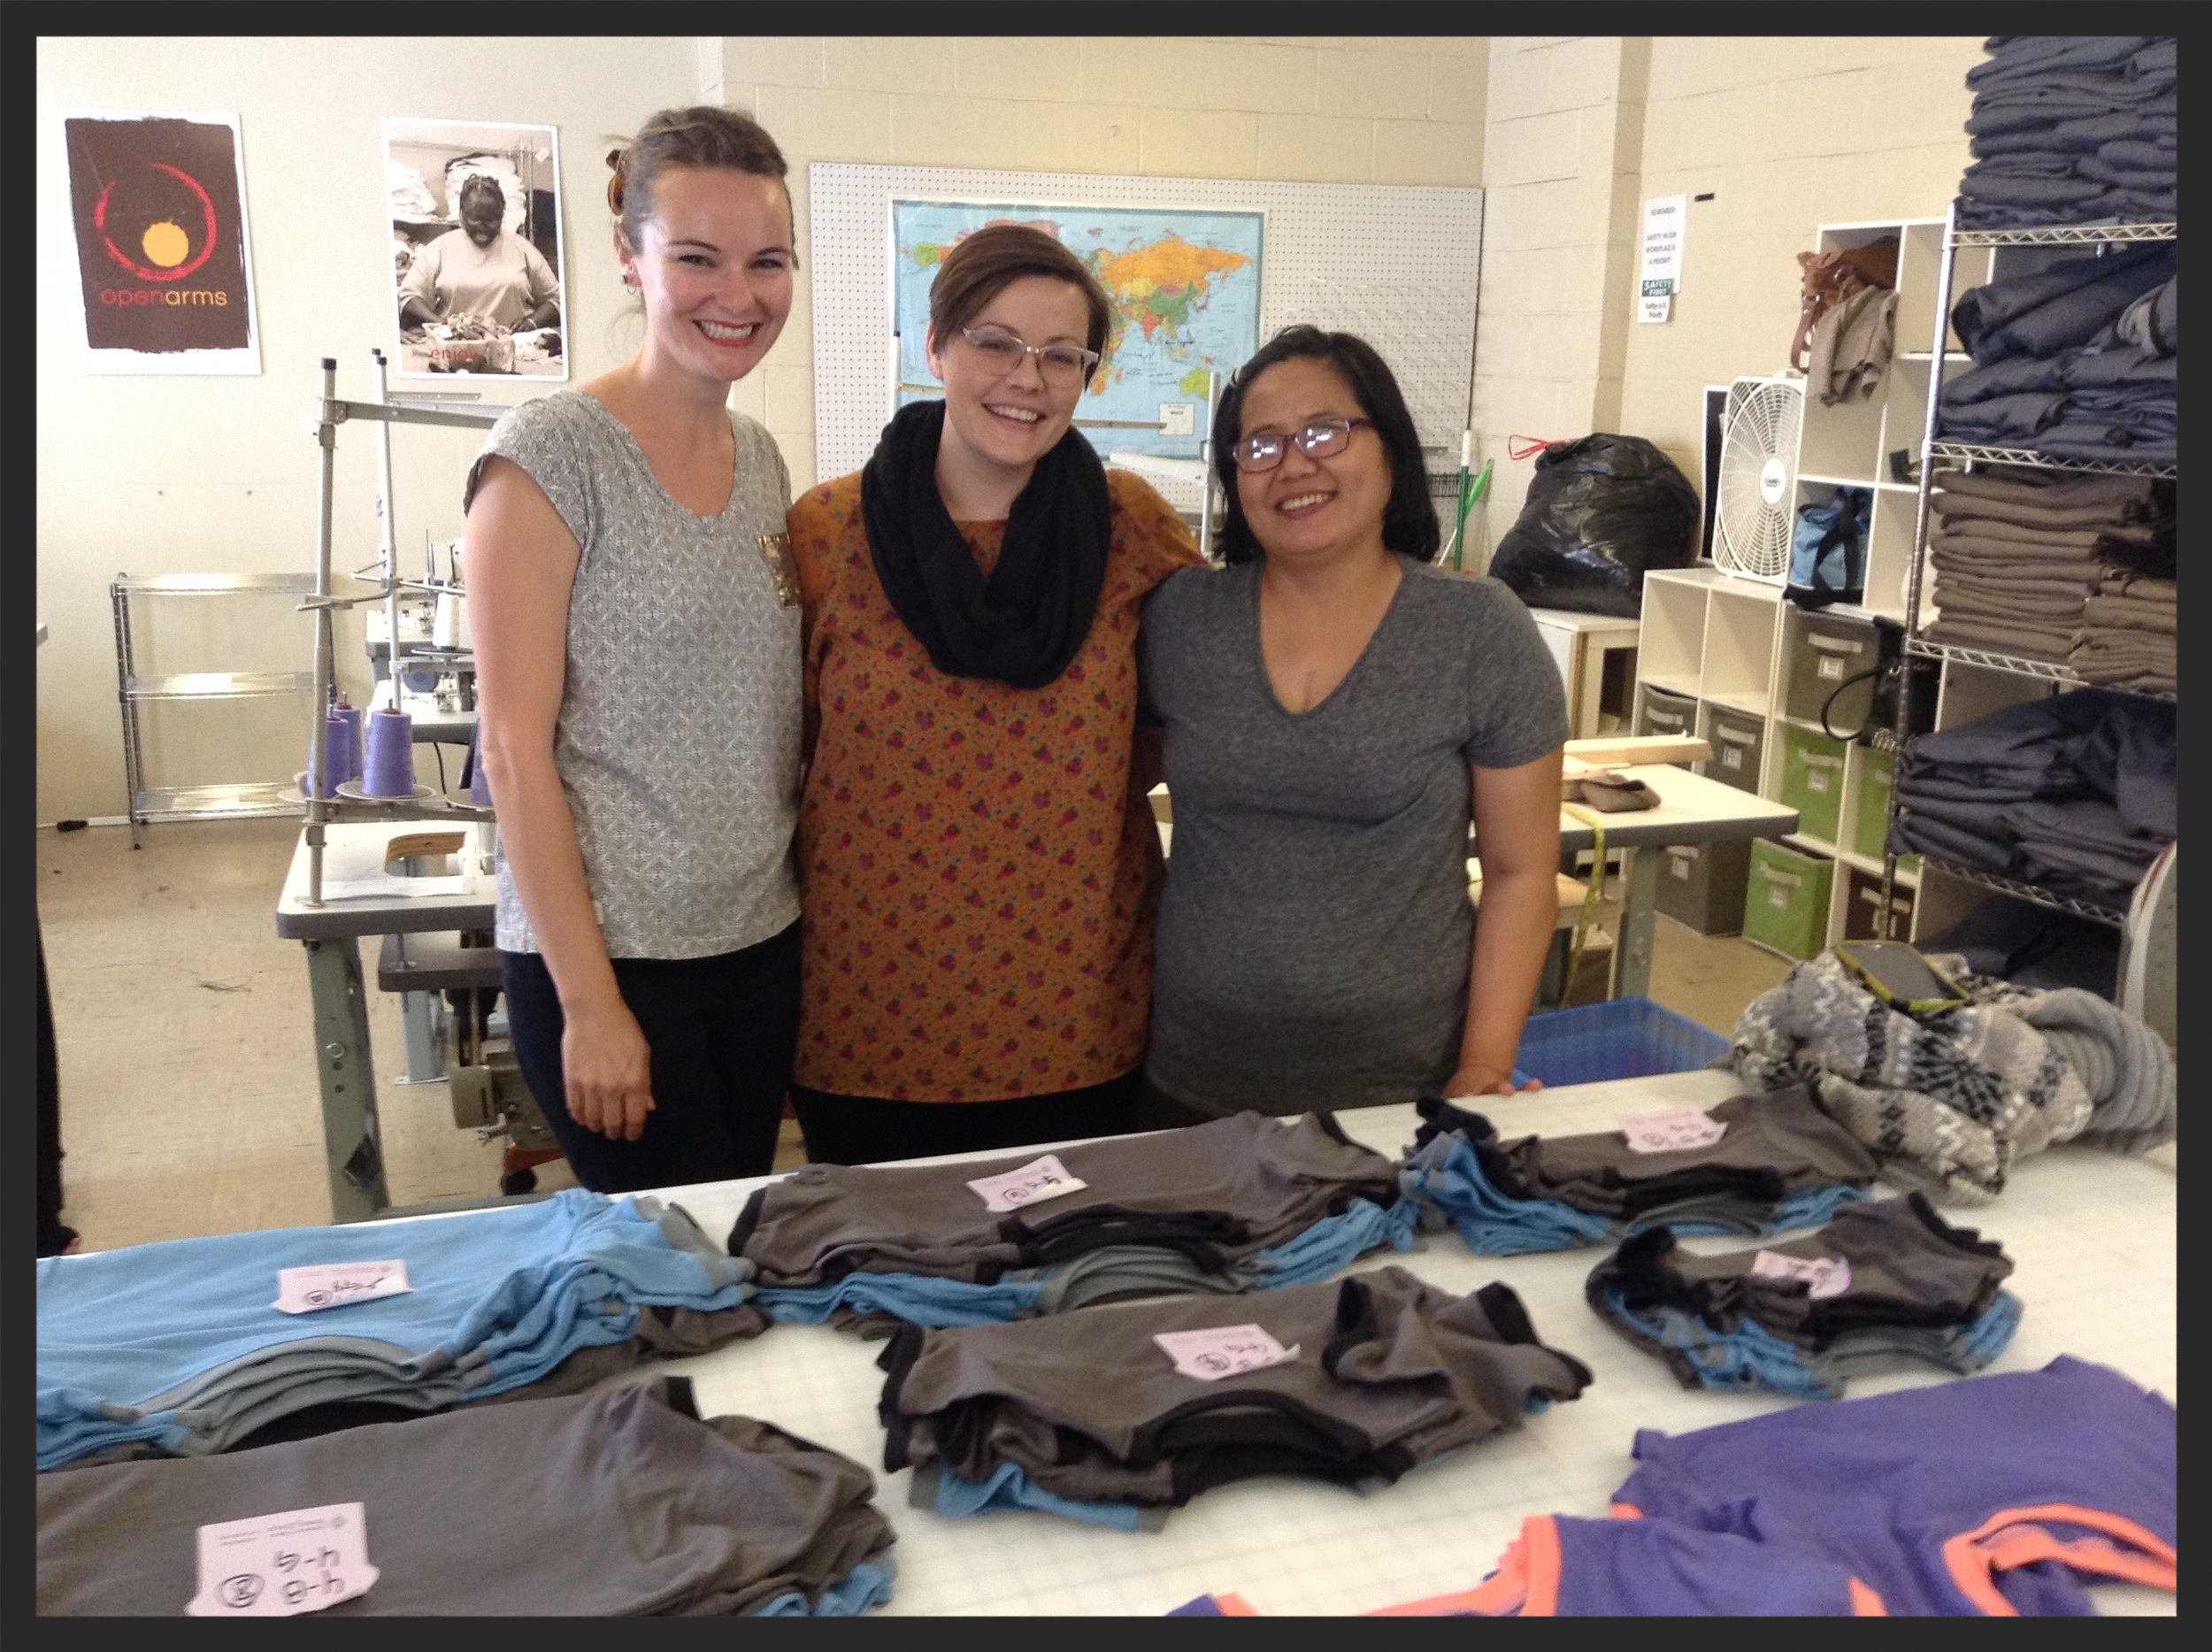 Evan, Emily, and Thang at Open Arms, reviewing the brand new Texas grown & sewn Tees!